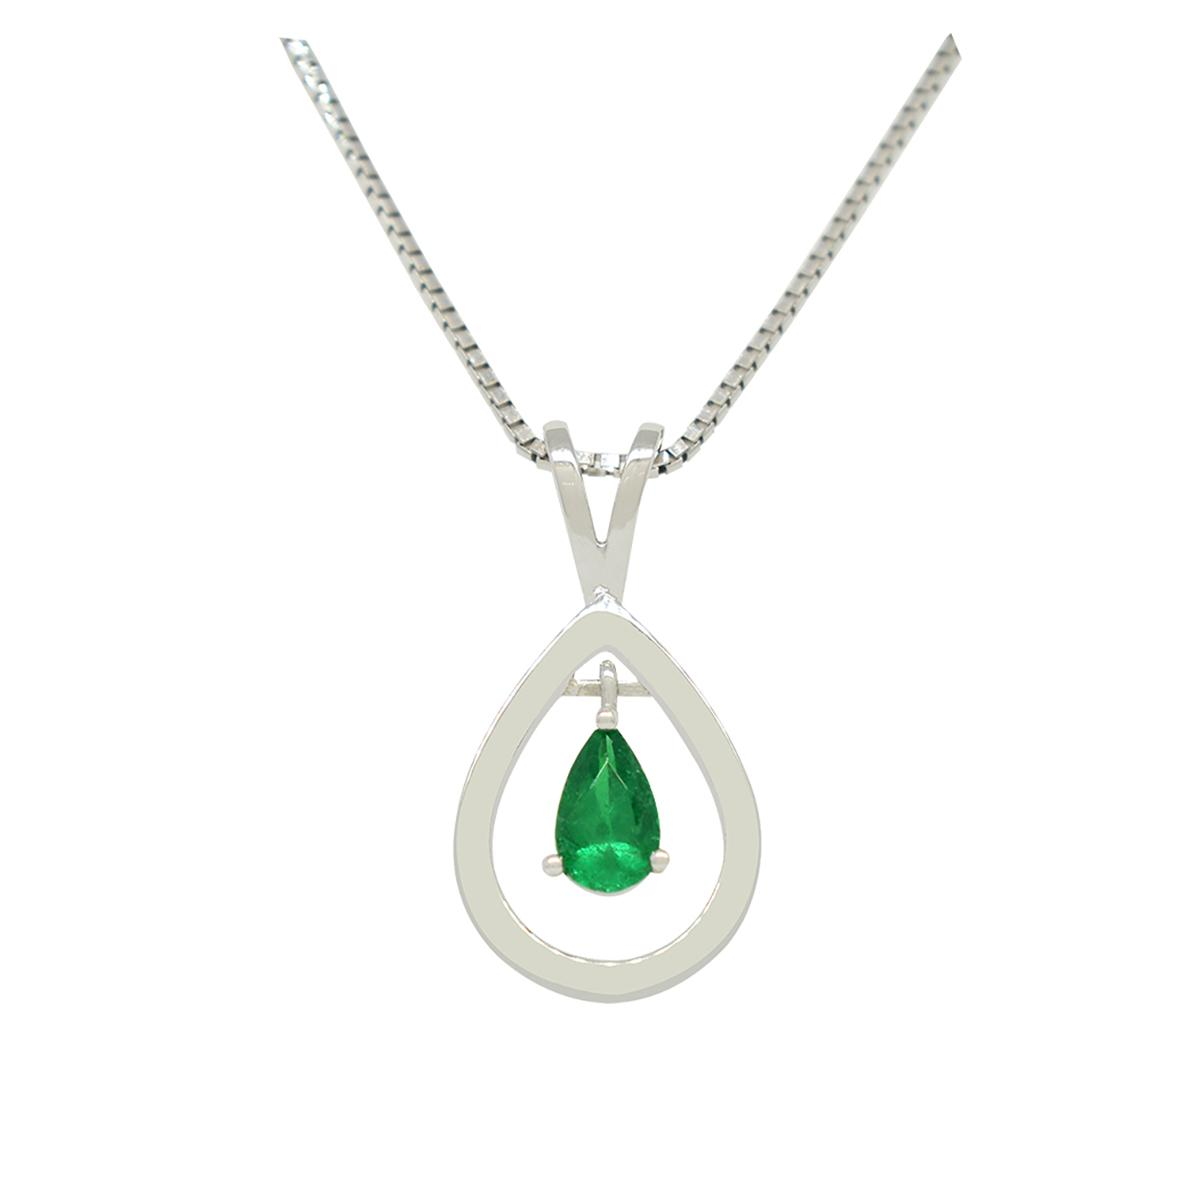 18k-white-gold-solitaire-emerald-pendant-with-pear-shape-natural-emerald